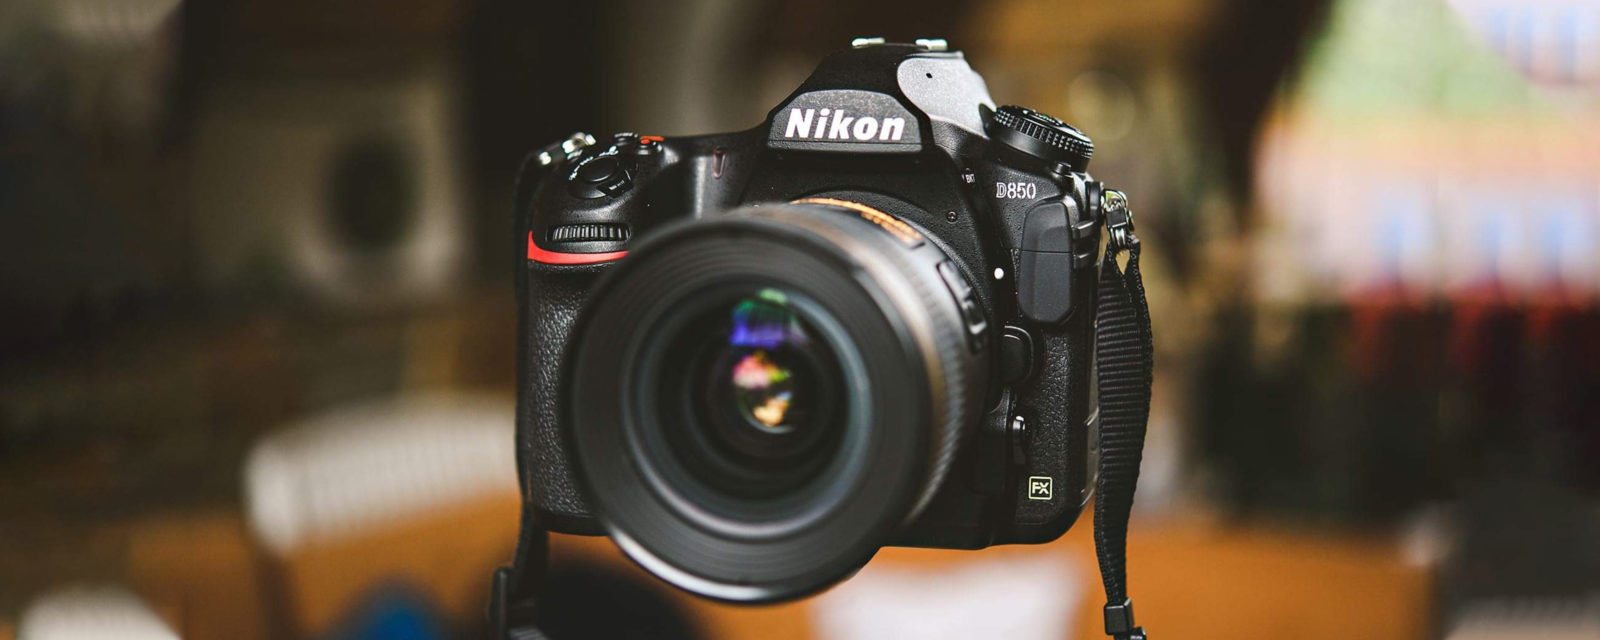 Nikon D850 Review // DSLR Full Frame Camera